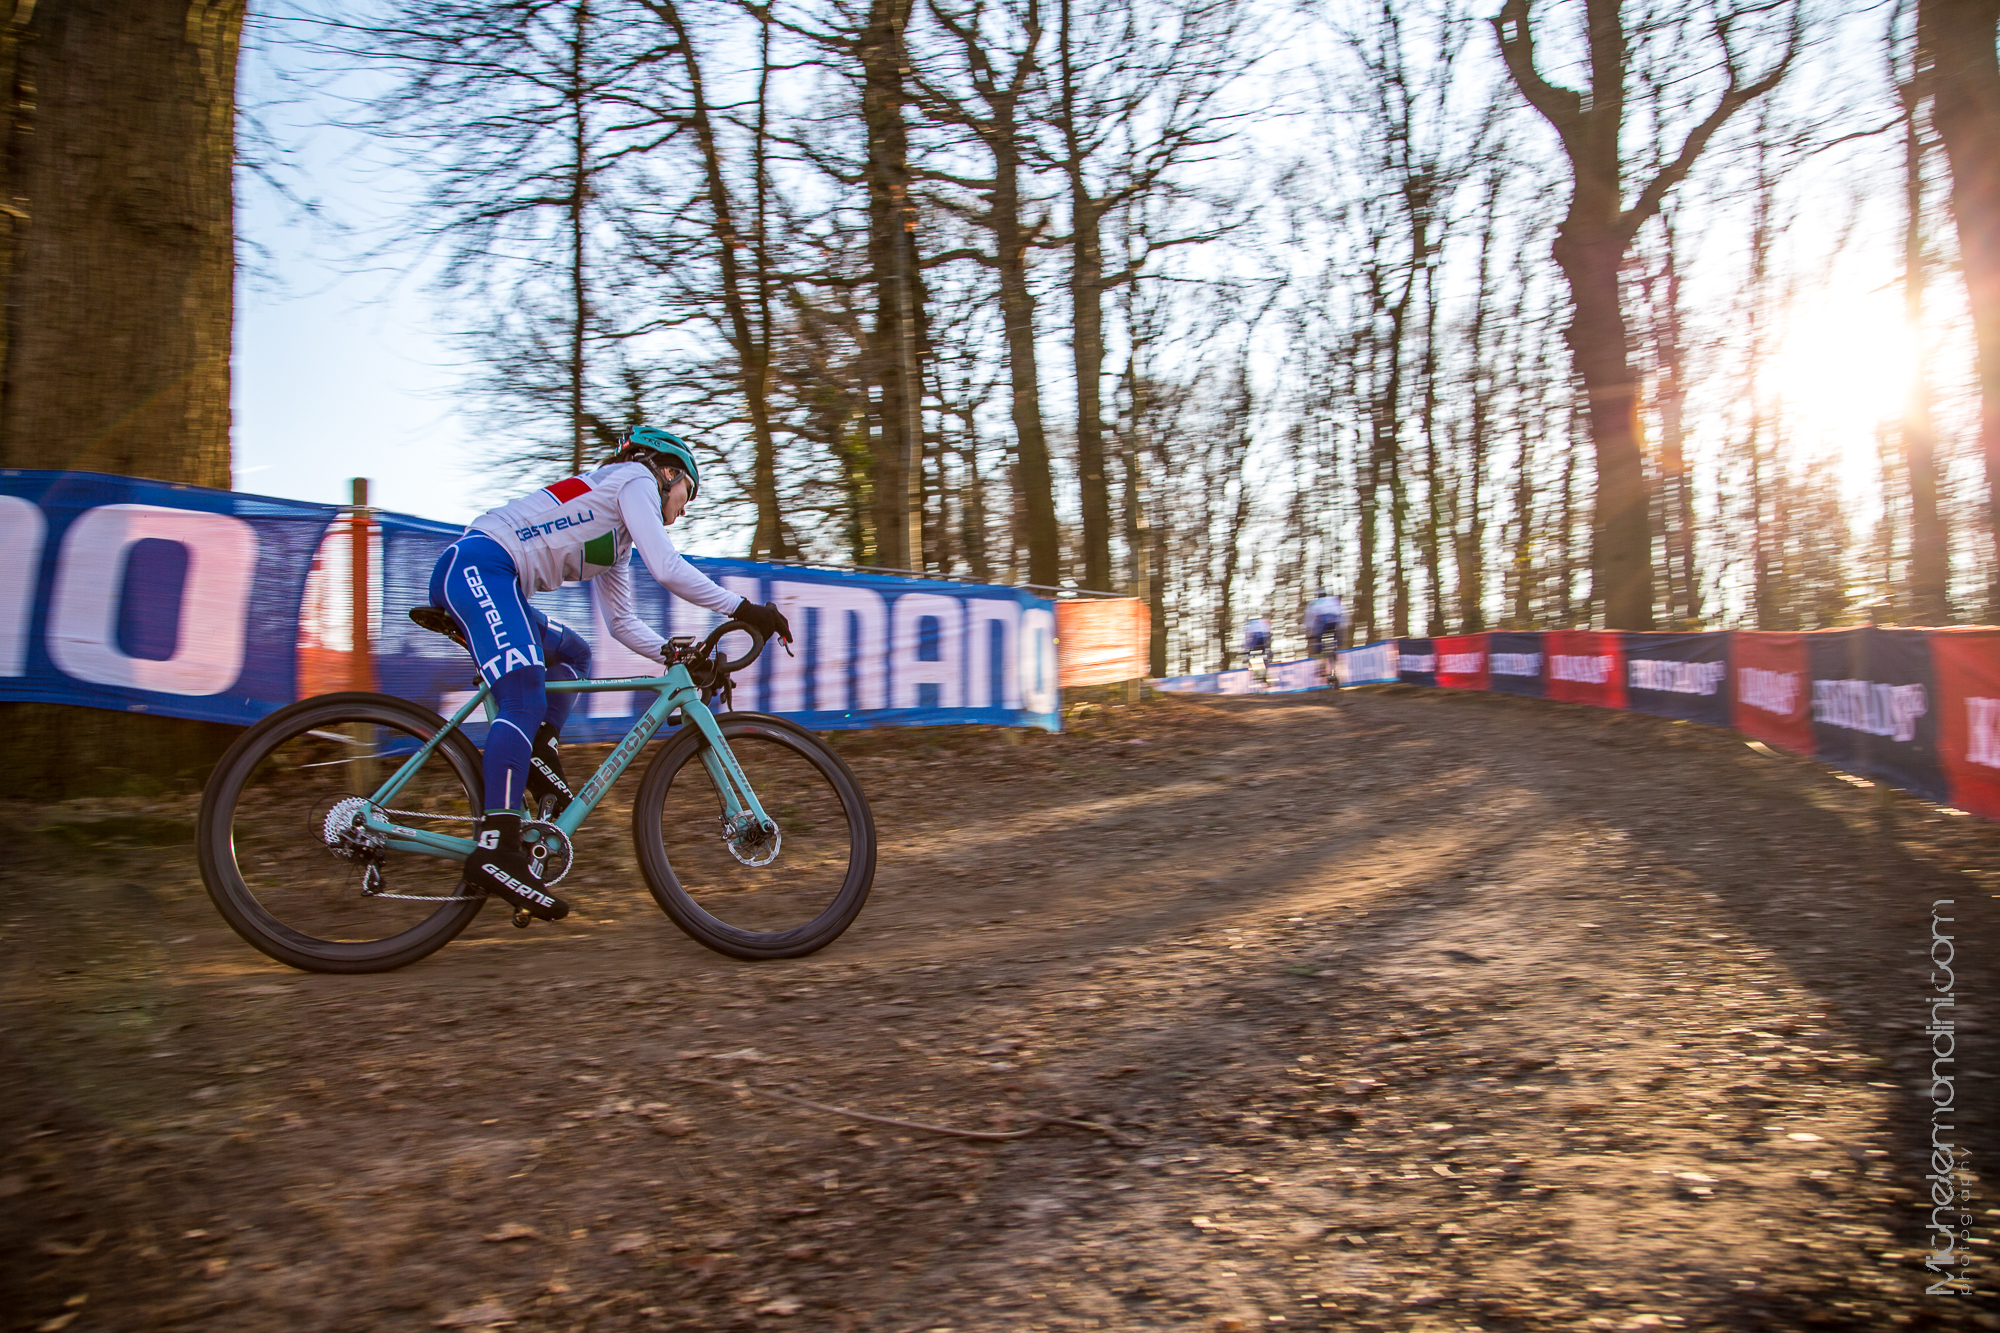 #lightbro for Chiara Teocchi in Hoogerheide - Michele Mondini